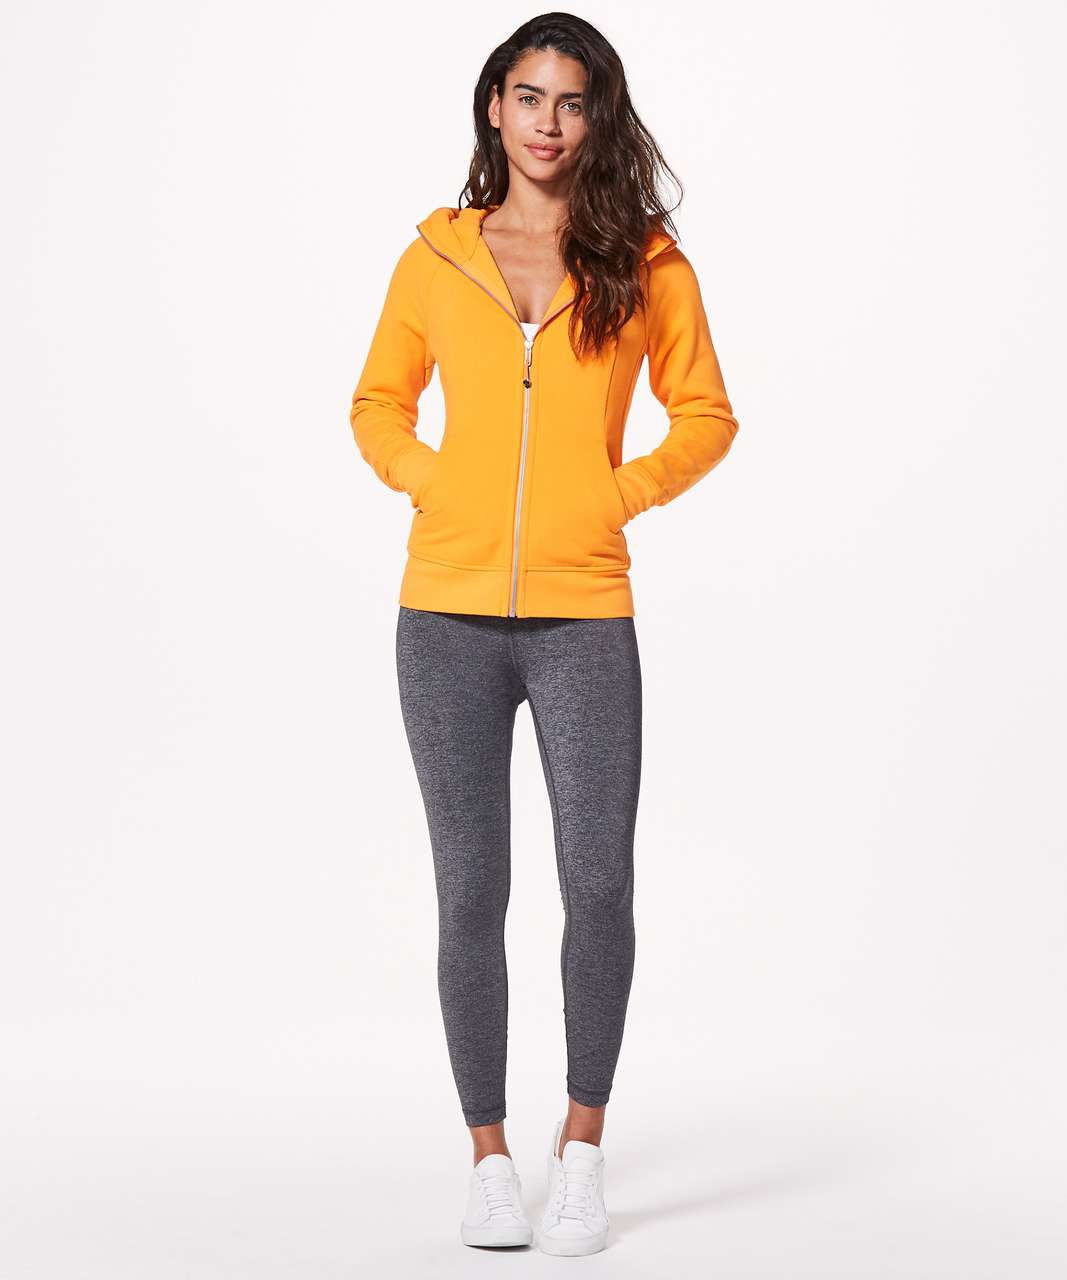 Lululemon Scuba Hoodie *Light Cotton Fleece - Vivid Amber (First Release)